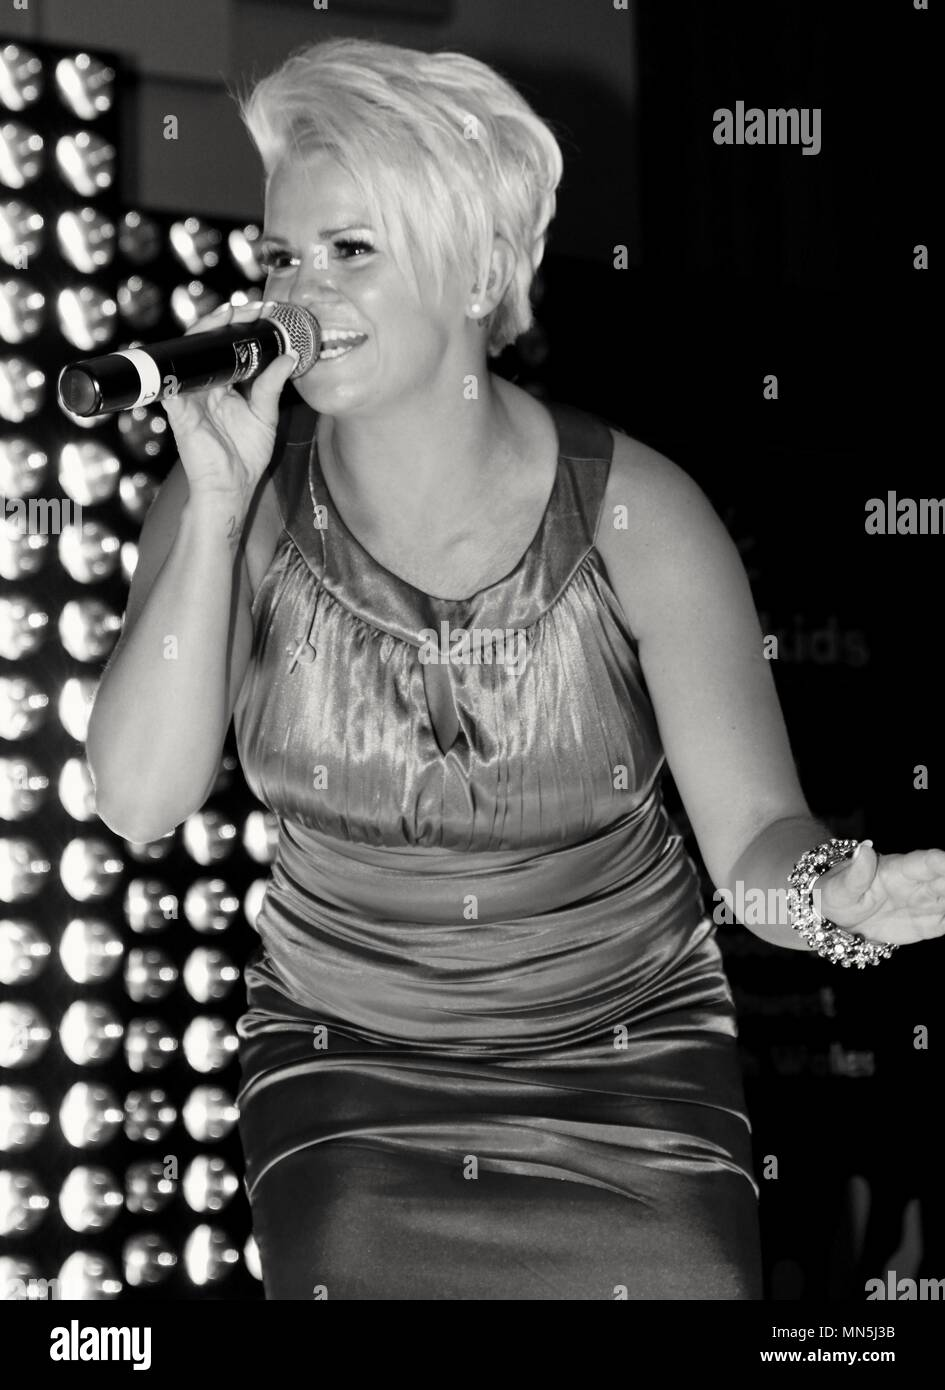 Liverpool,Uk, Kerry Katona performs solo for charity cash 4 kids in Liverpool, Credit Ian Fairbrother/Alamy - Stock Image